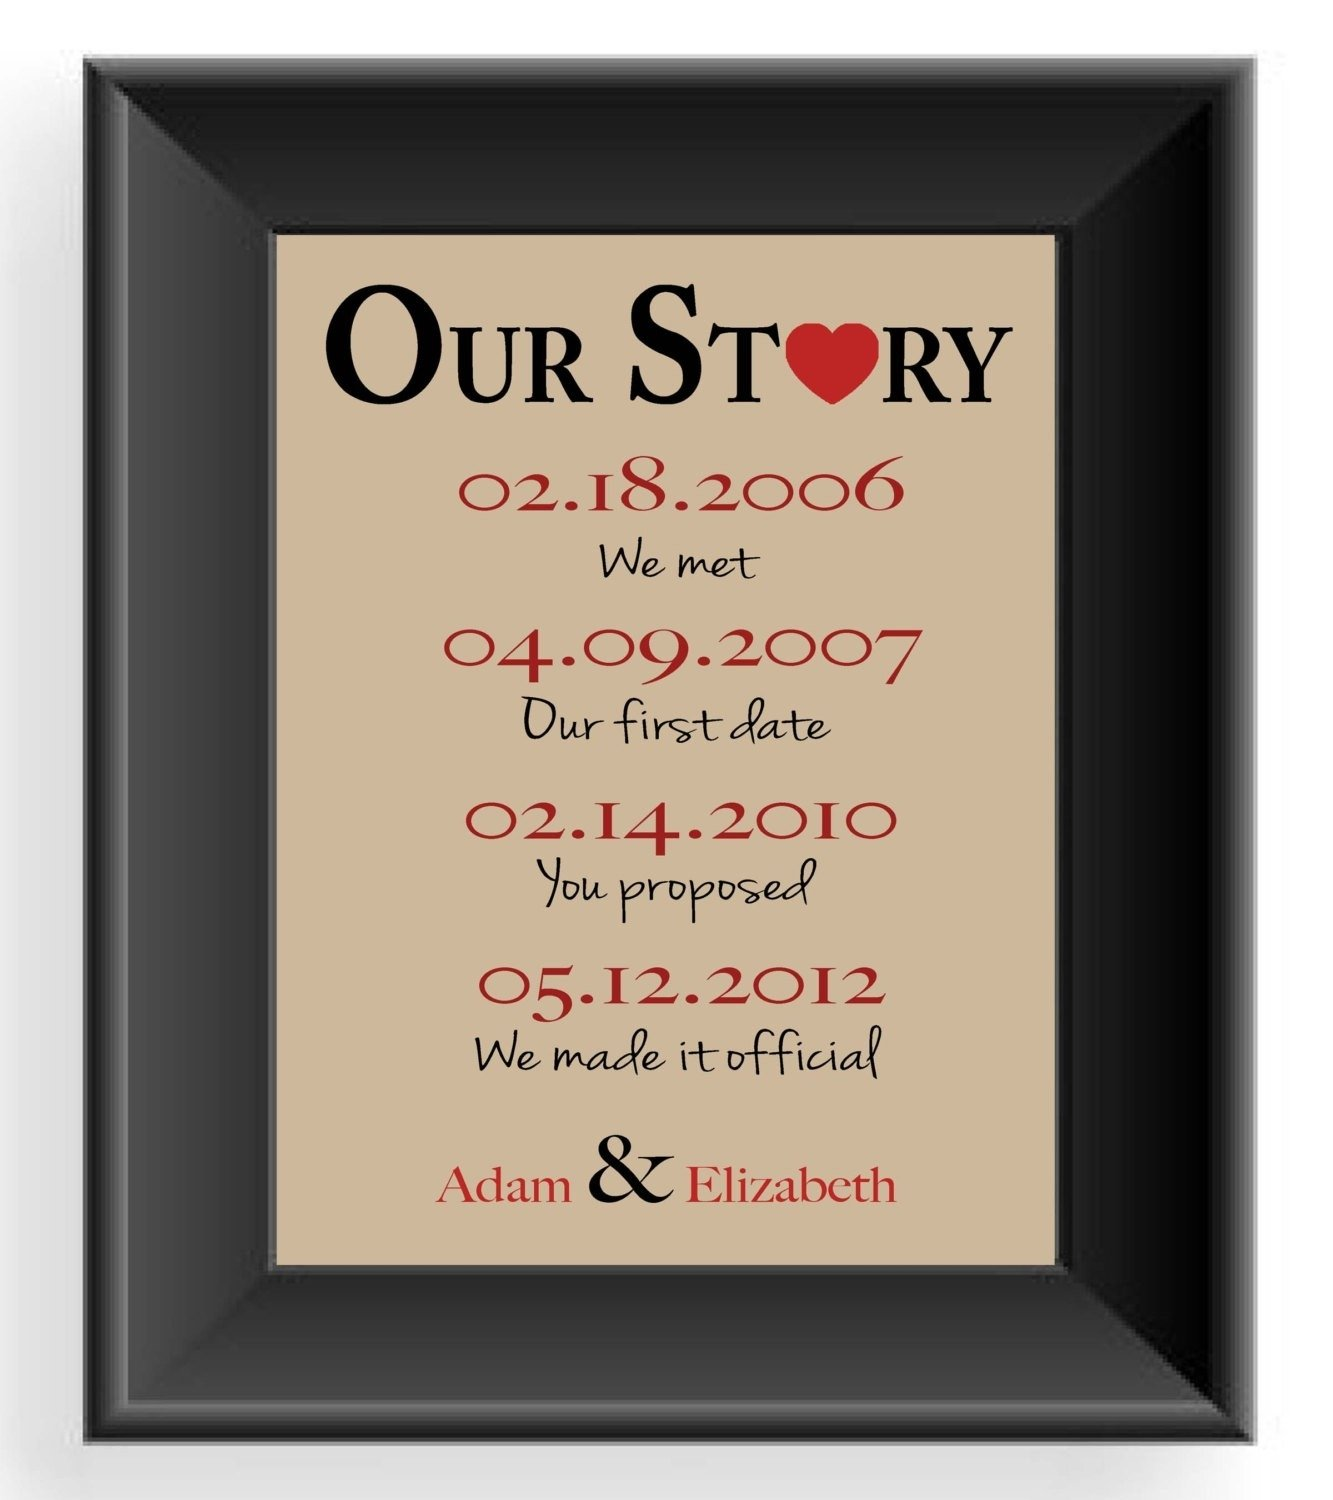 elegant ideas for 1st wedding anniversary gift for husband | wedding